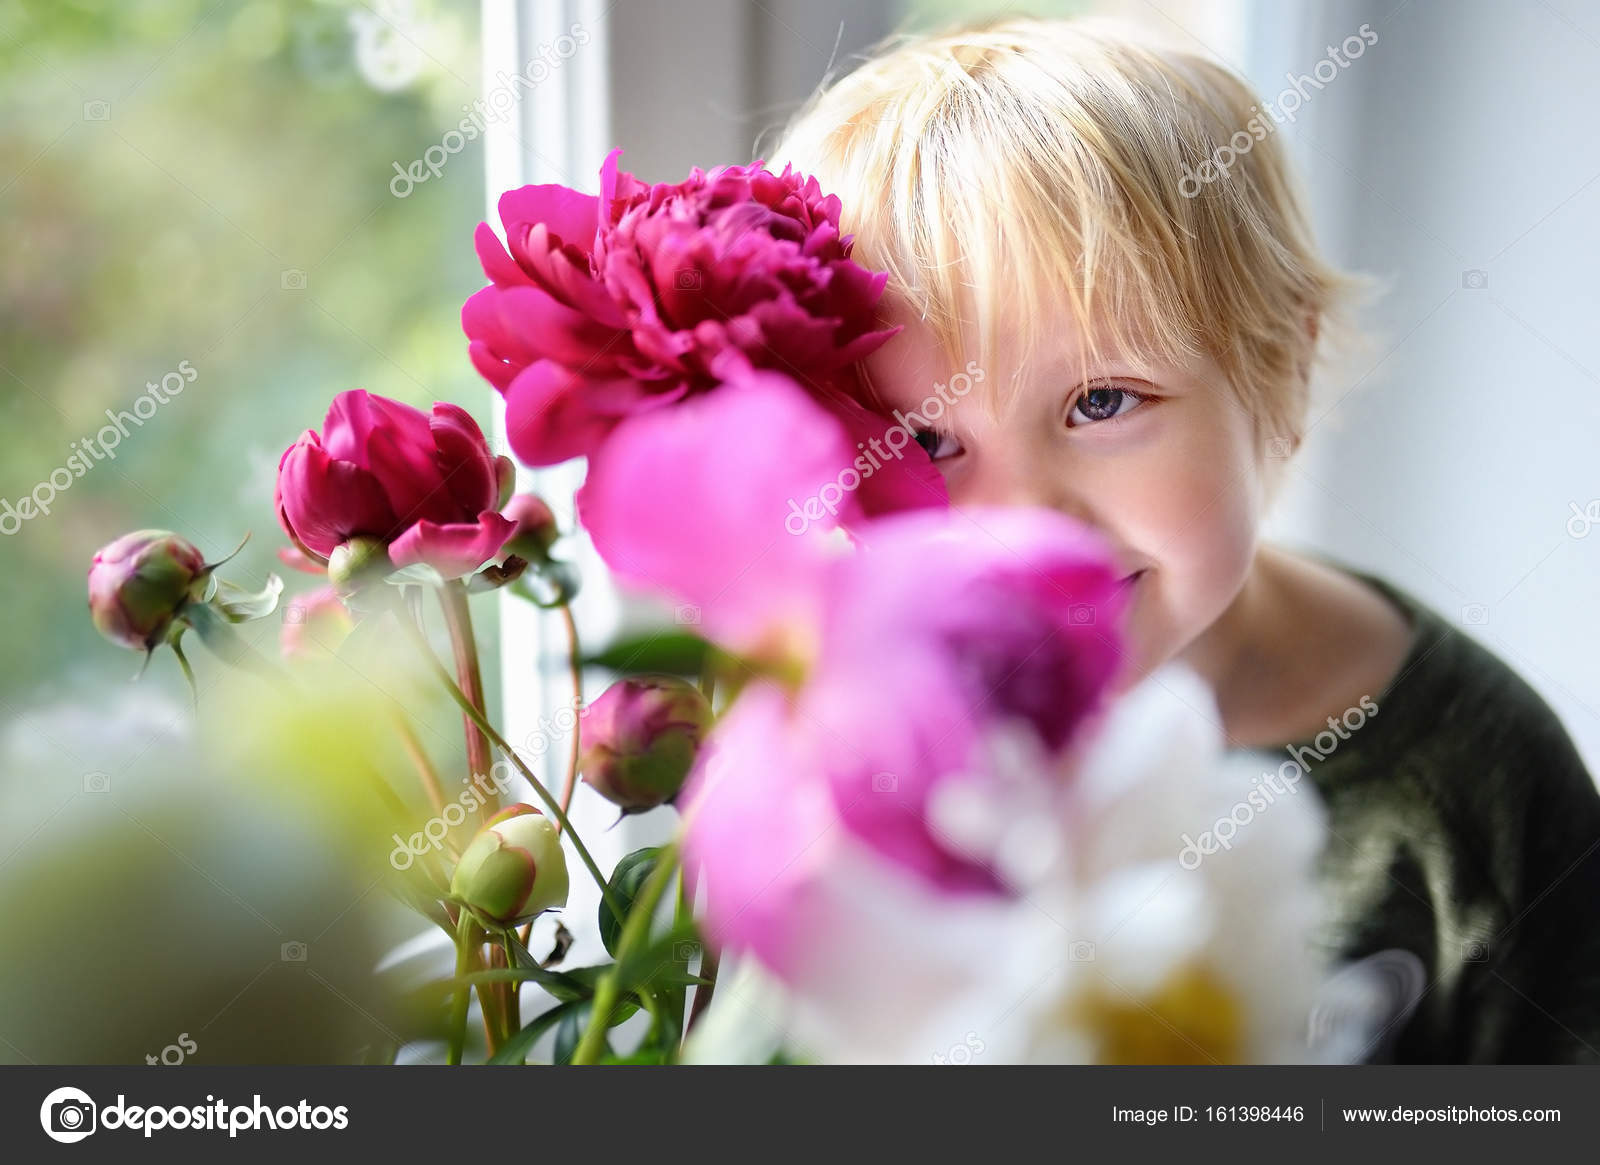 Cute little child and amazing bouquet of white and purple peonies cute little child and amazing bouquet of white and purple peonies beautiful flowers on window sill at home photo by marysmn izmirmasajfo